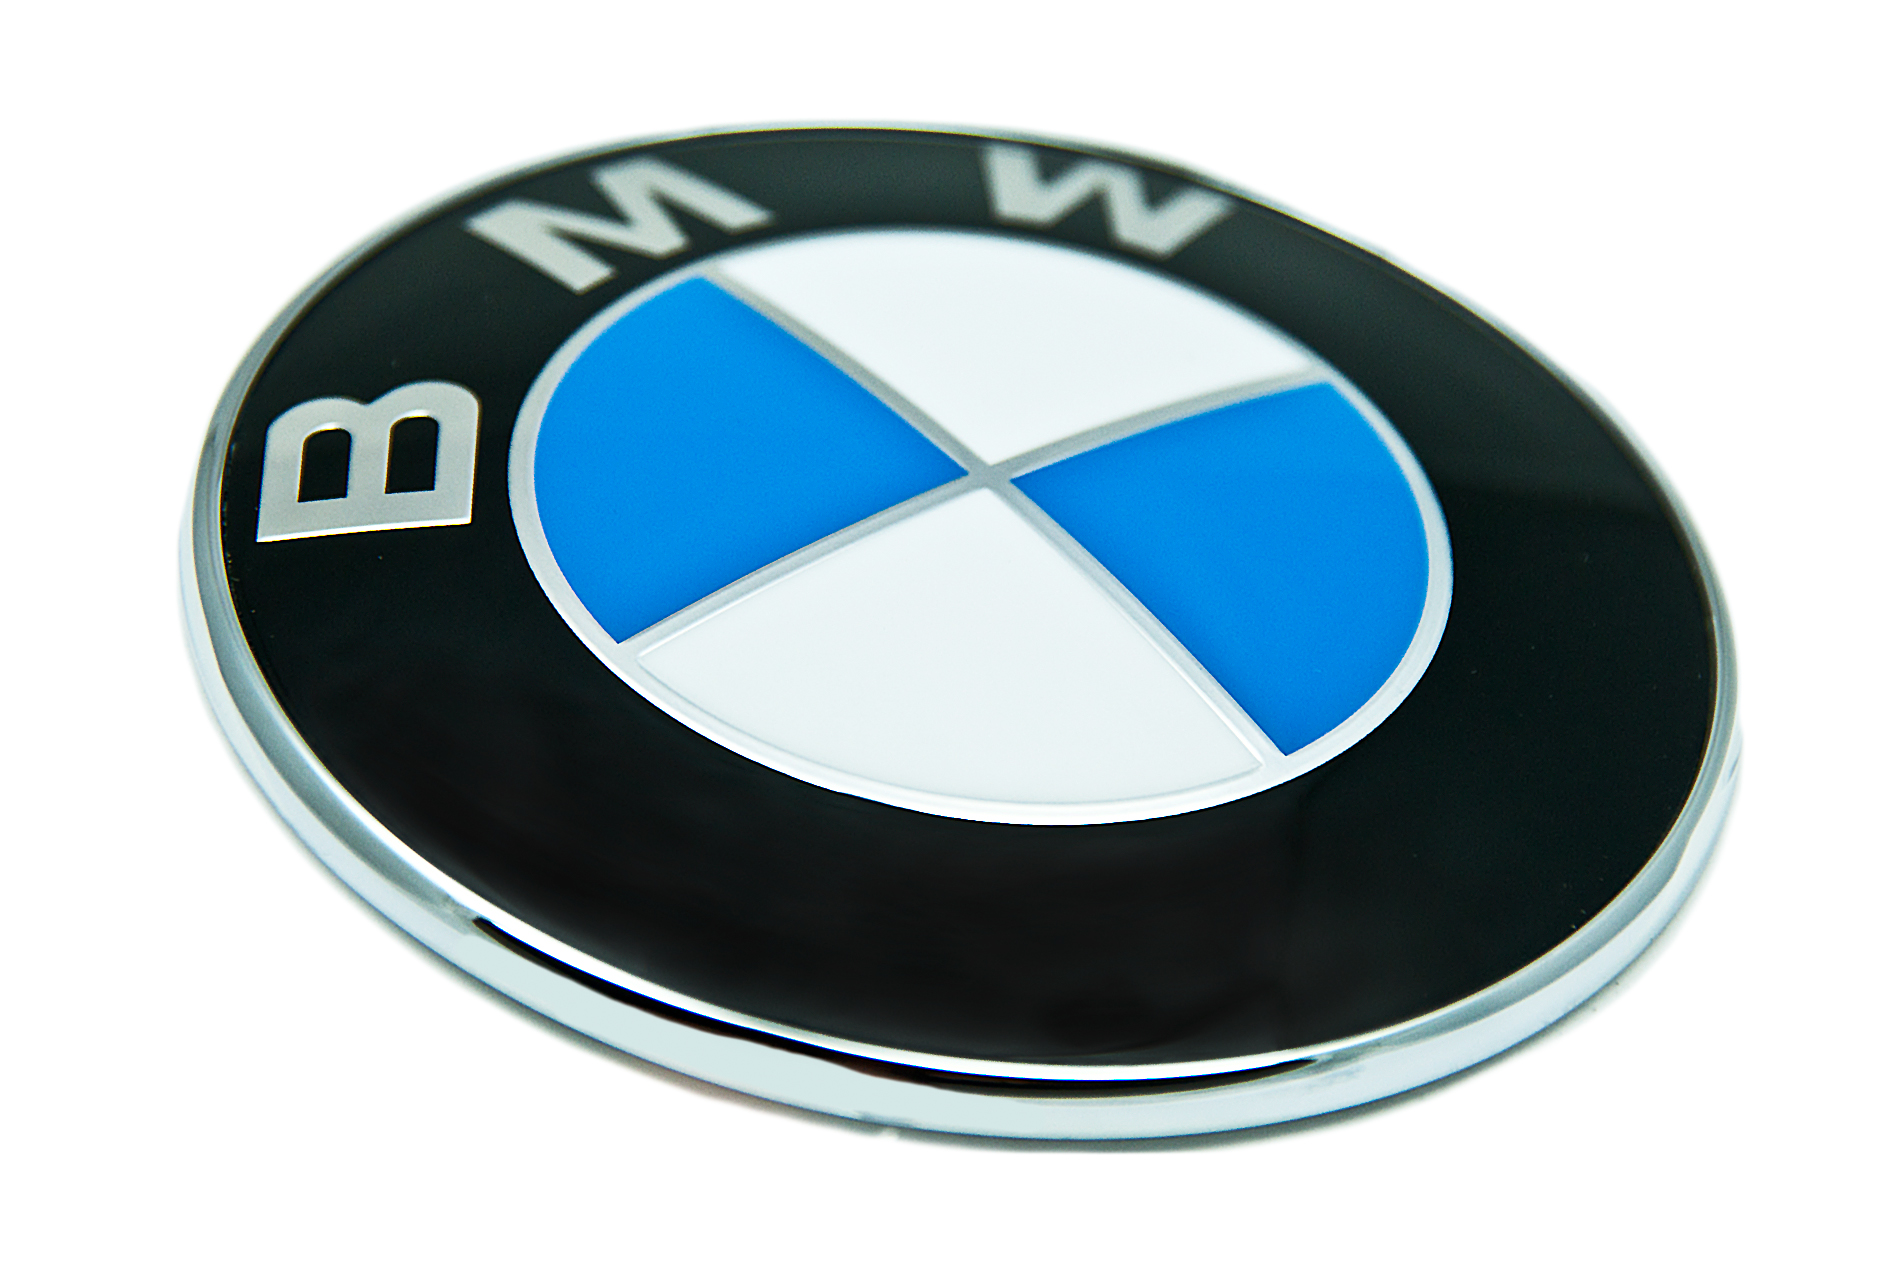 Bmw Z3 Bonnet Badge.Bmw Z3 Bonnet Badge Bmw Zm Series ...